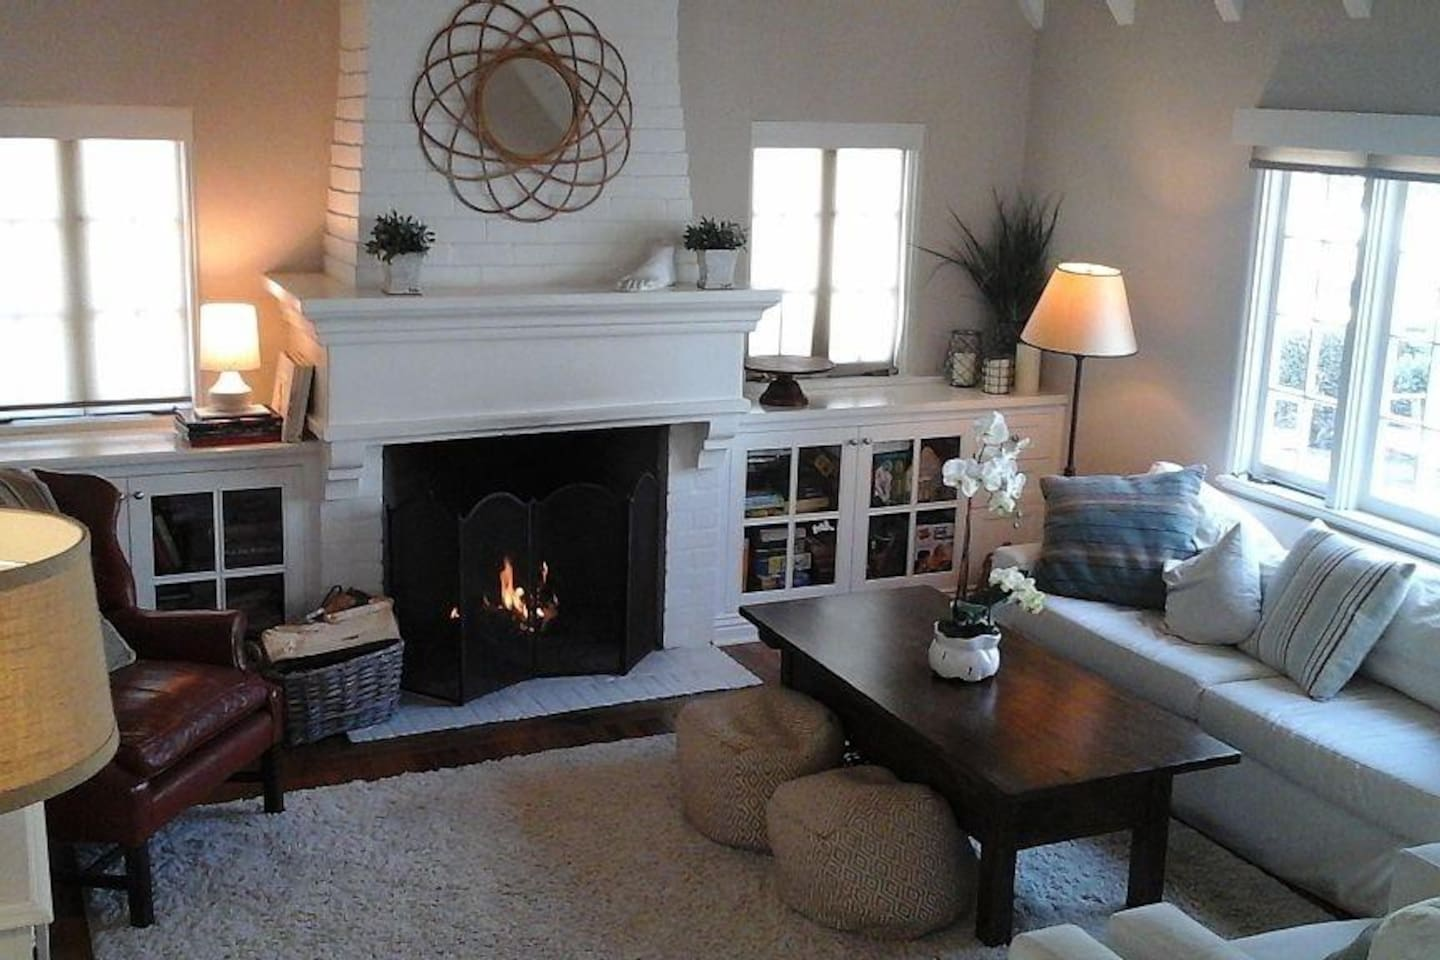 330 amethyst a at balboa island houses for rent in newport